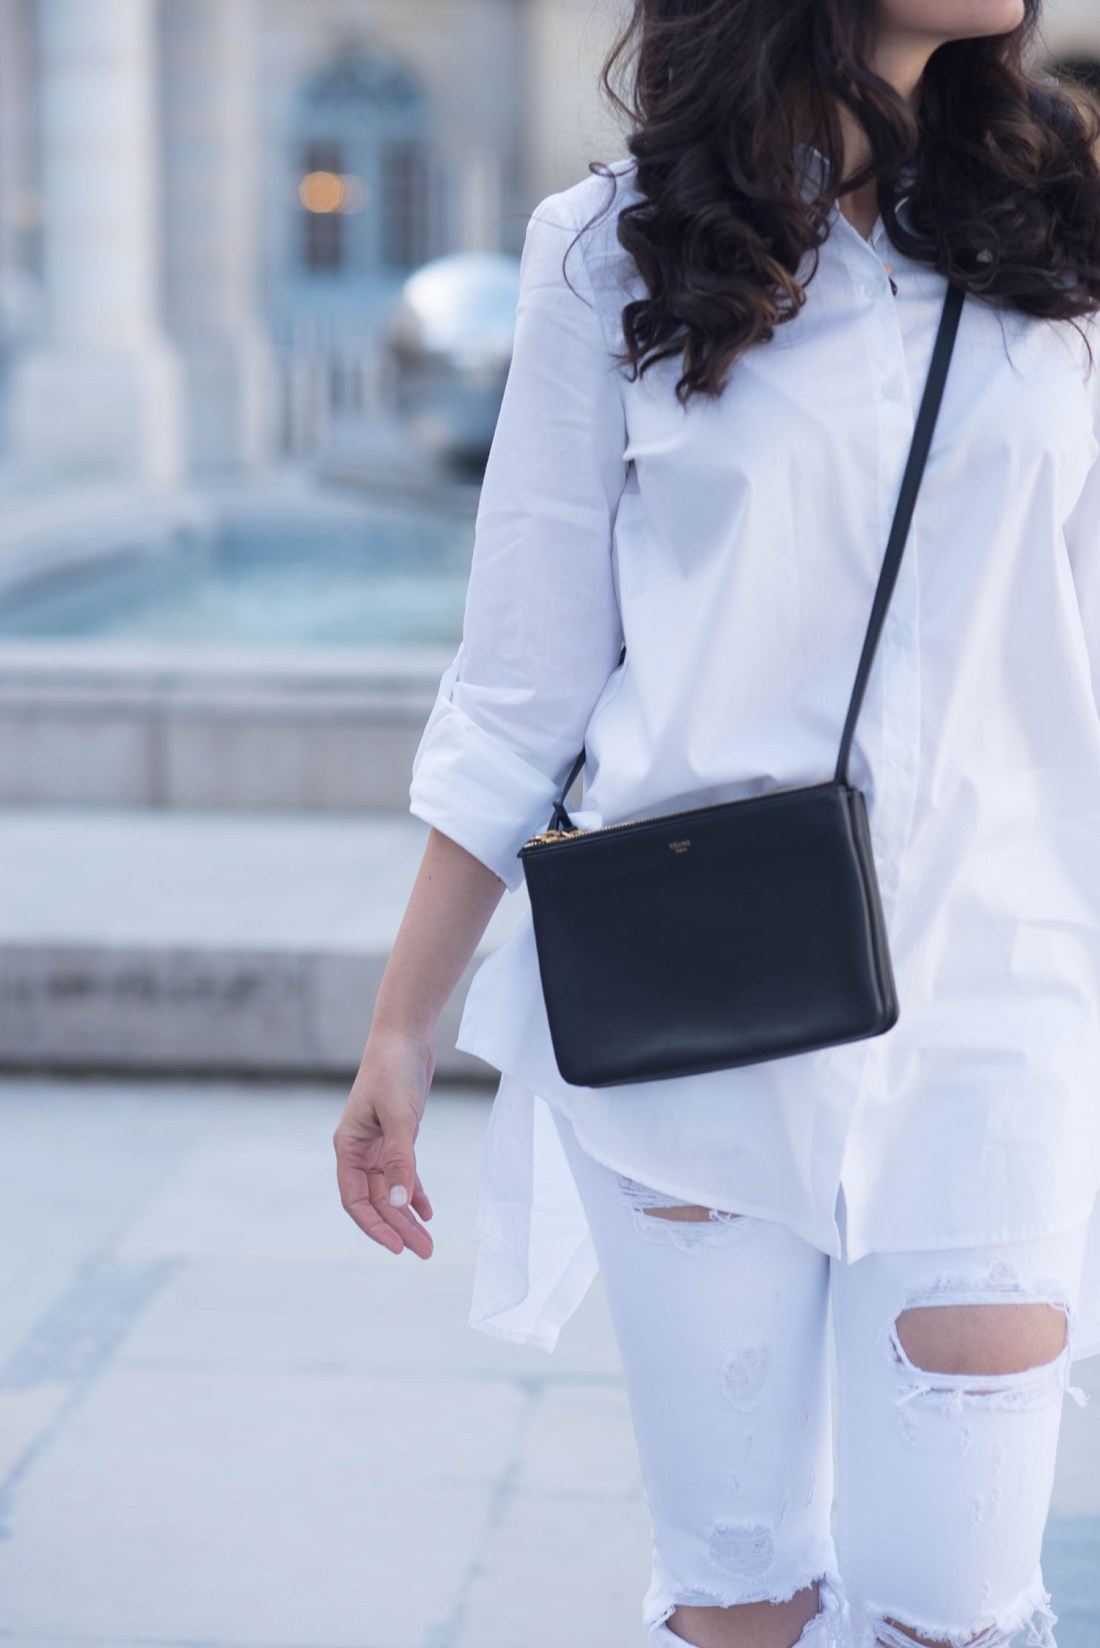 Outfit details fashion blogger Cee Fardoe of Coco & Vera, including a Celine trio bag and Marled blouse